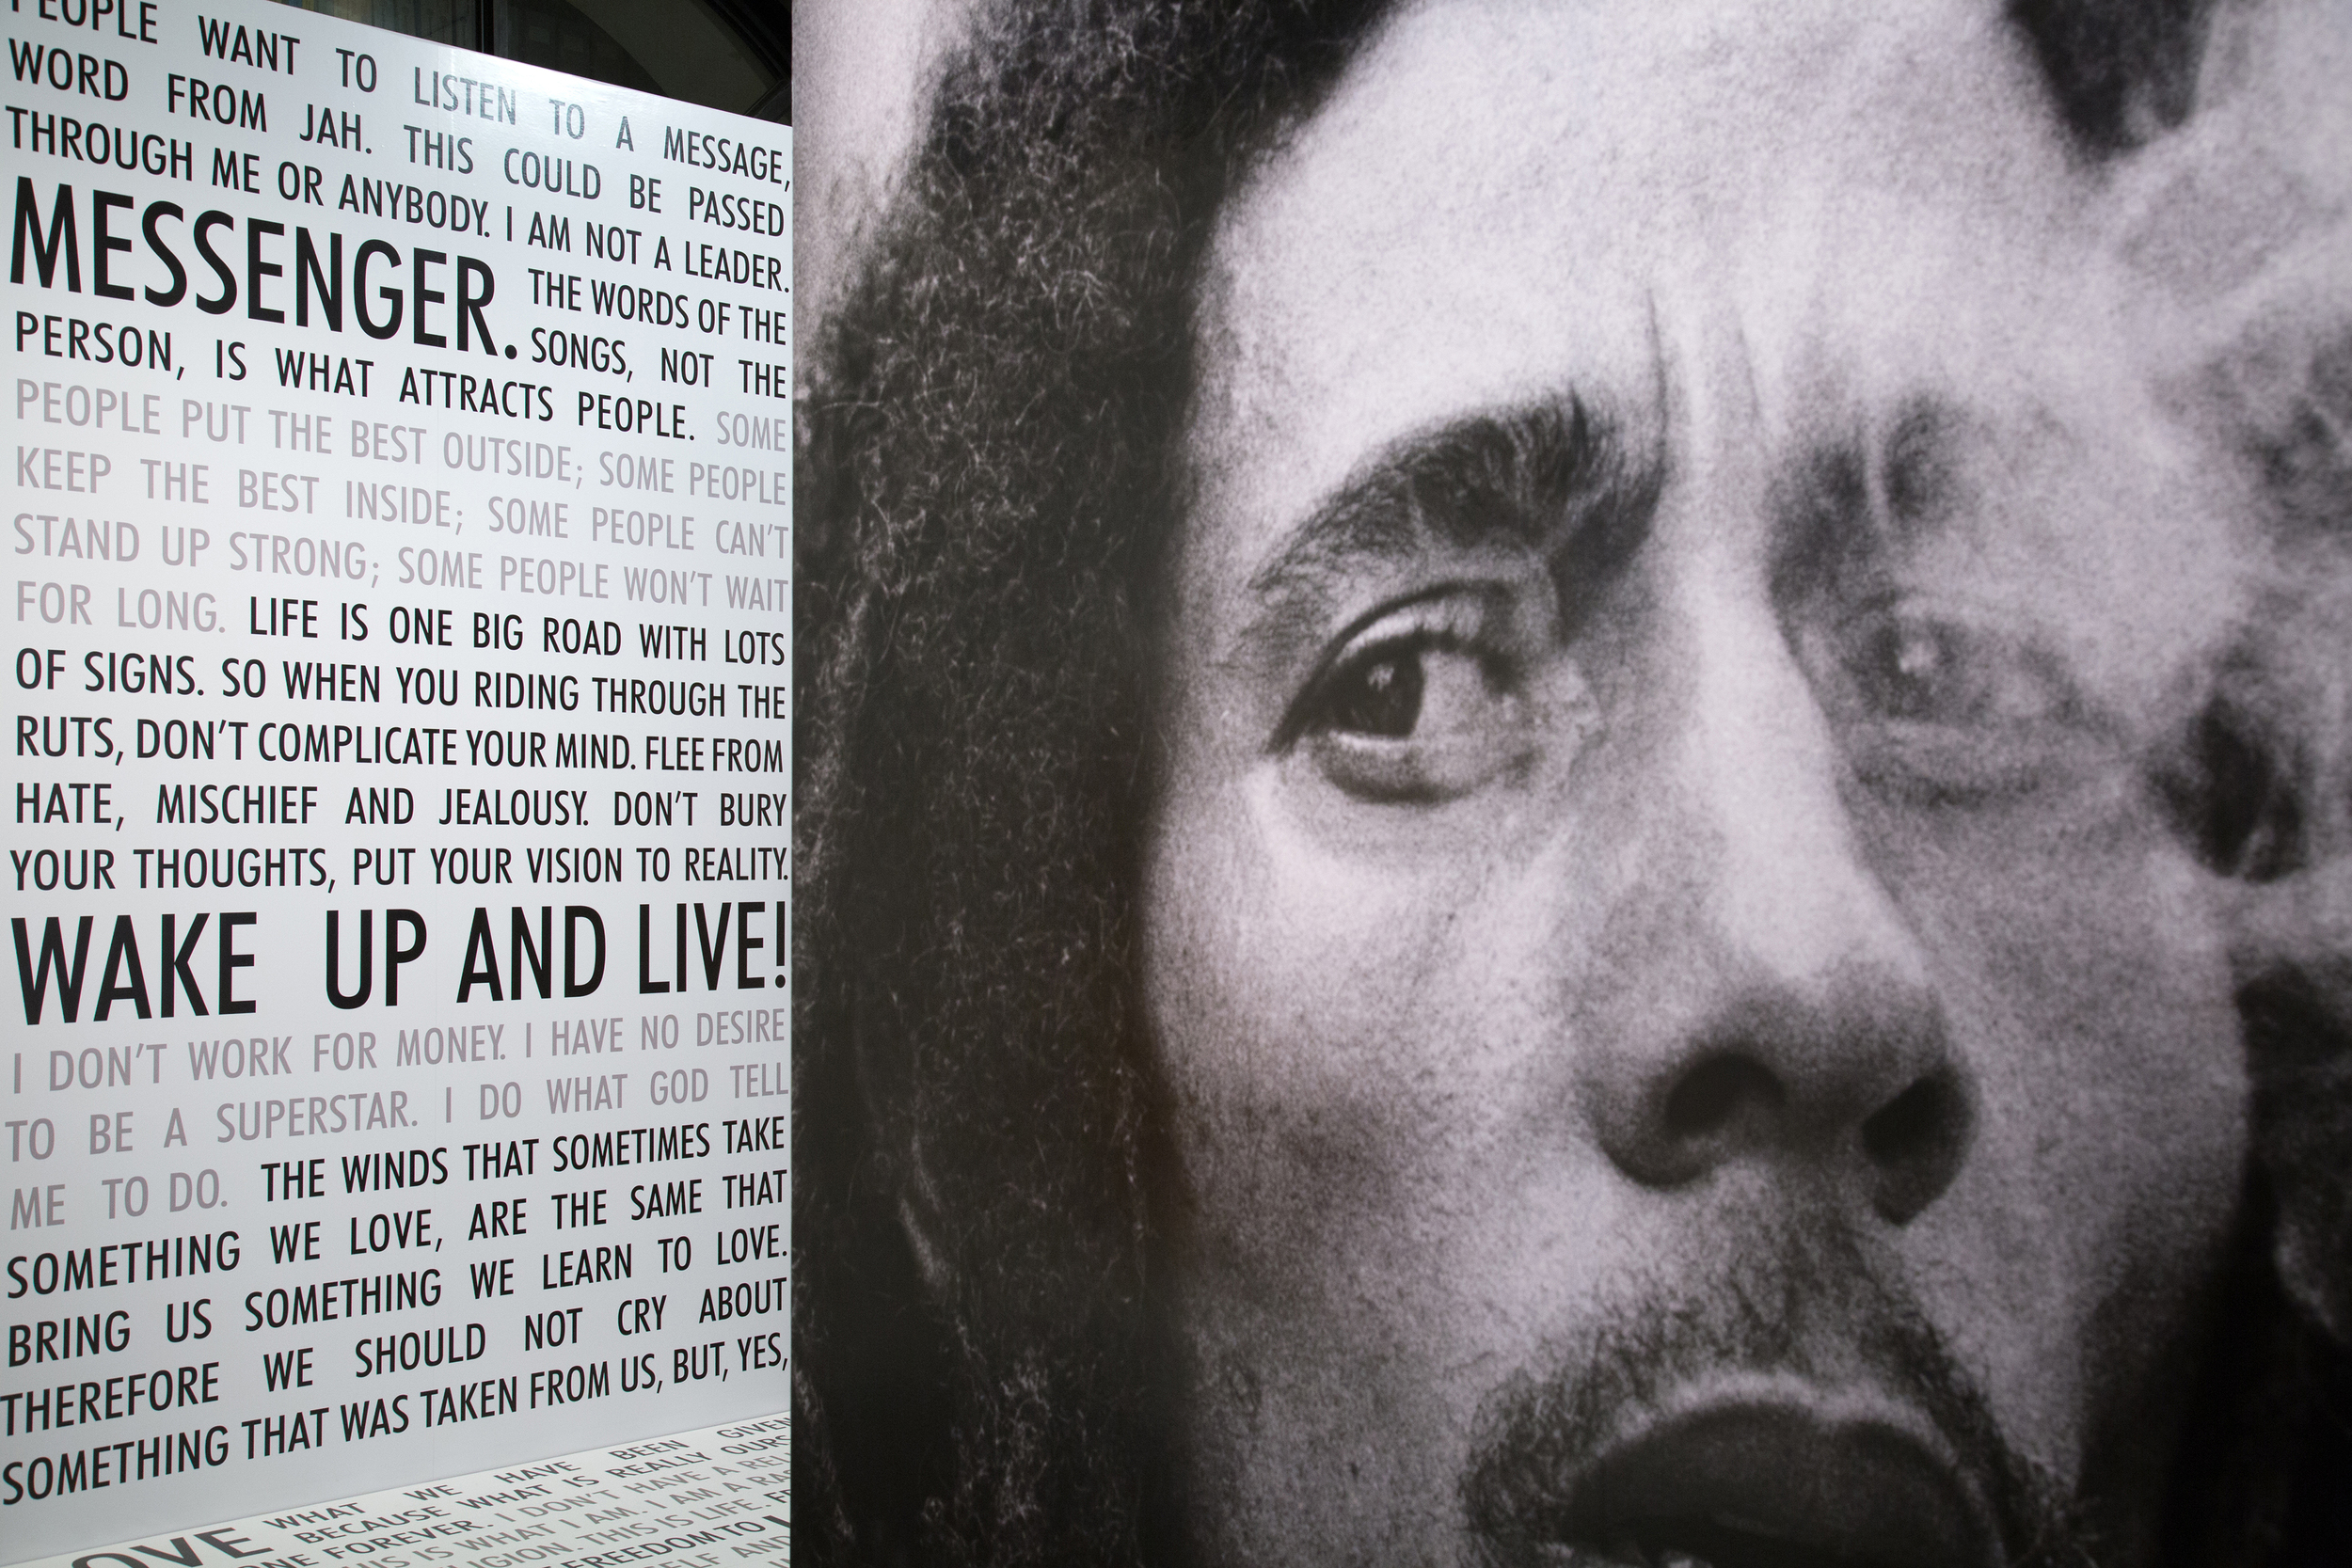 Bob Marley Exhibit at History Miami designed by Shulman + Associates photo by Robin Hill (c) HI RES (20).jpg